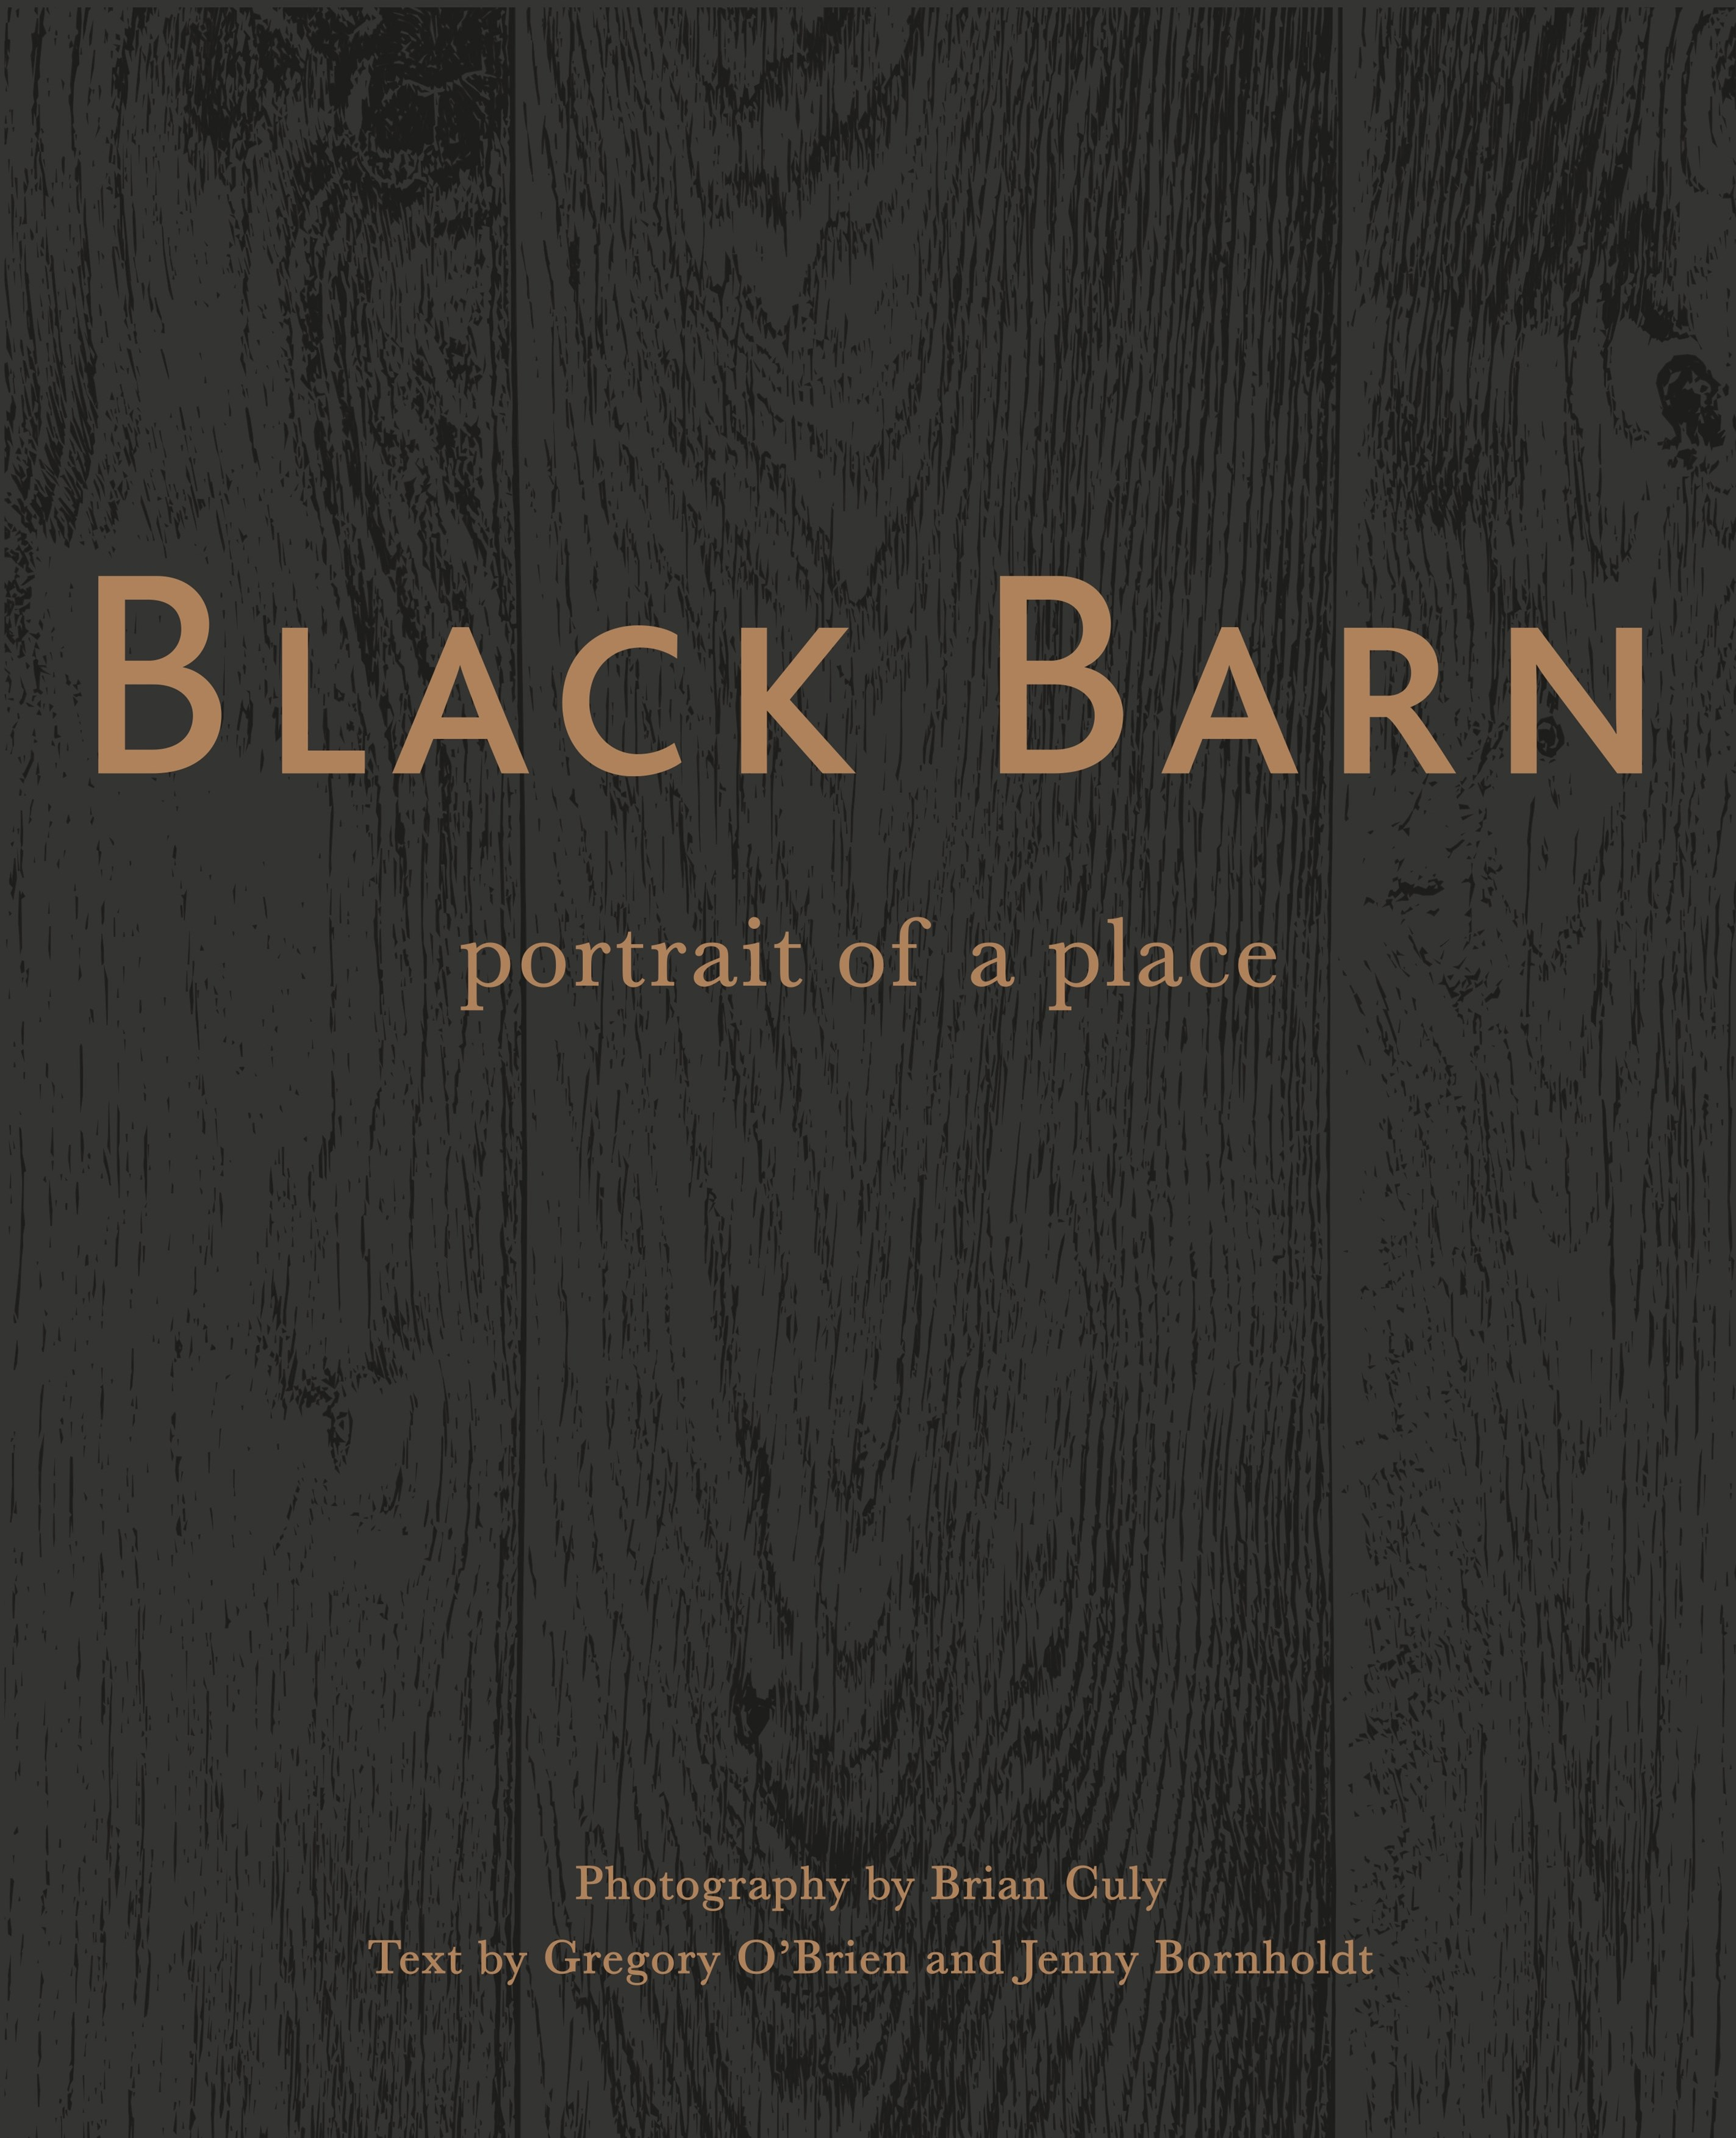 Black Barn: portrait of a place